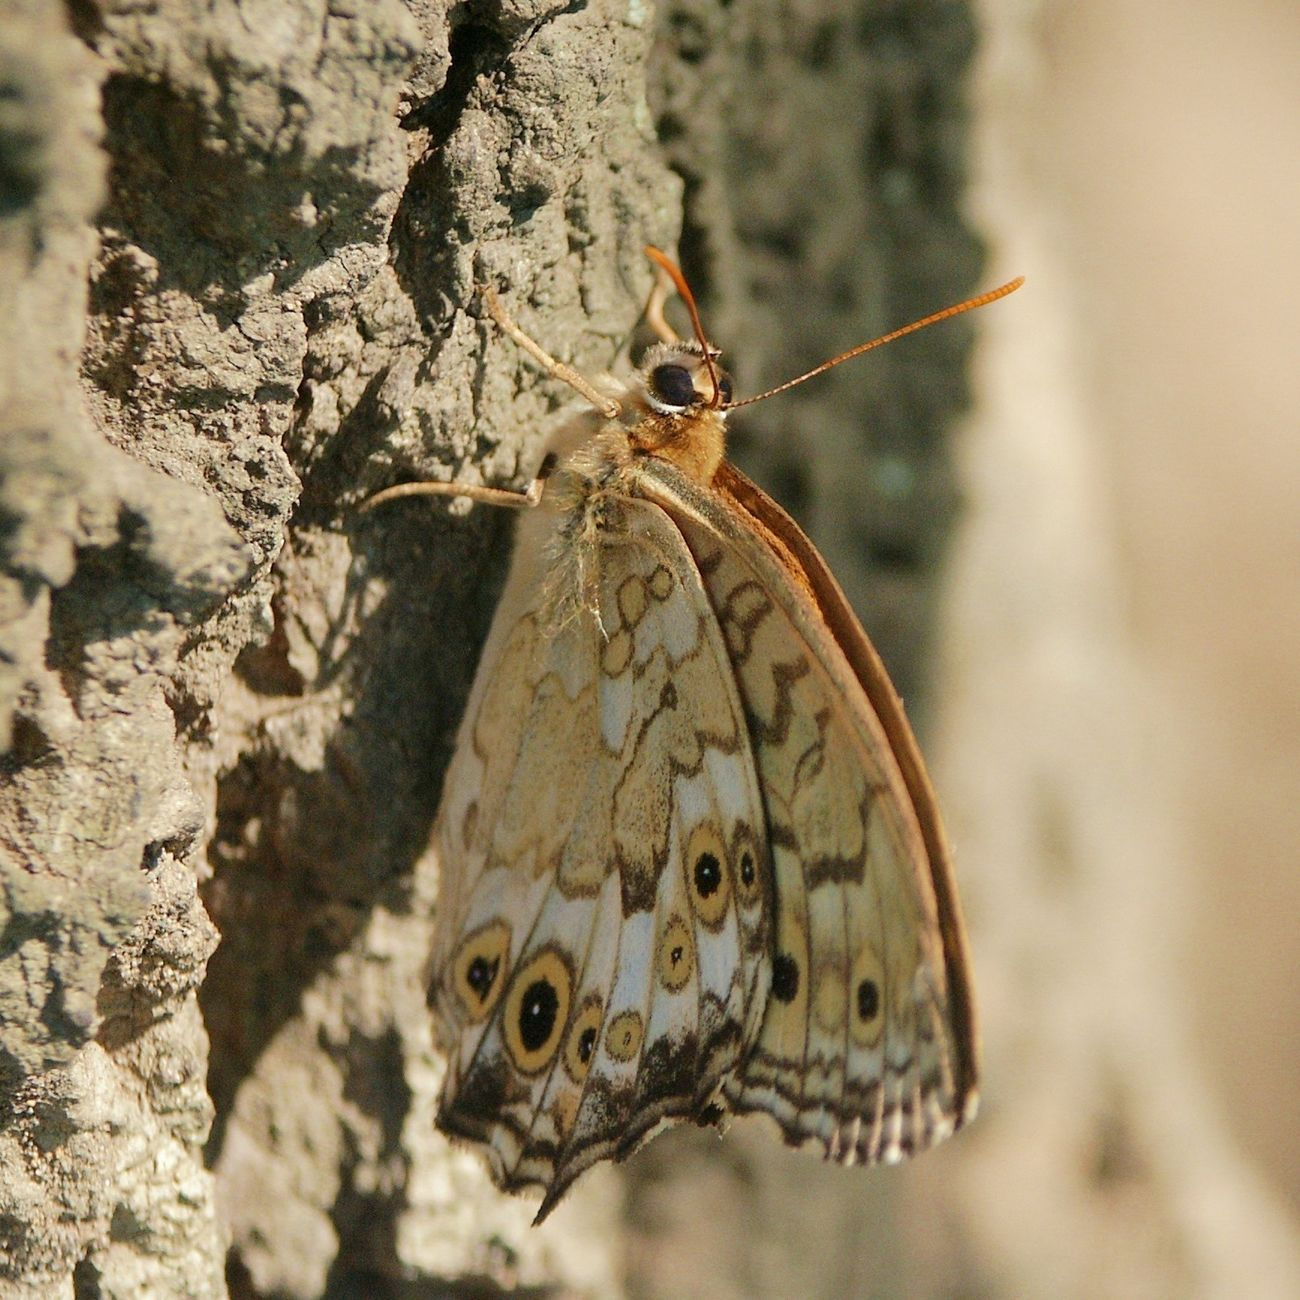 _Neope goschkevitschii_ Satyr Grayling Butterfly Insects